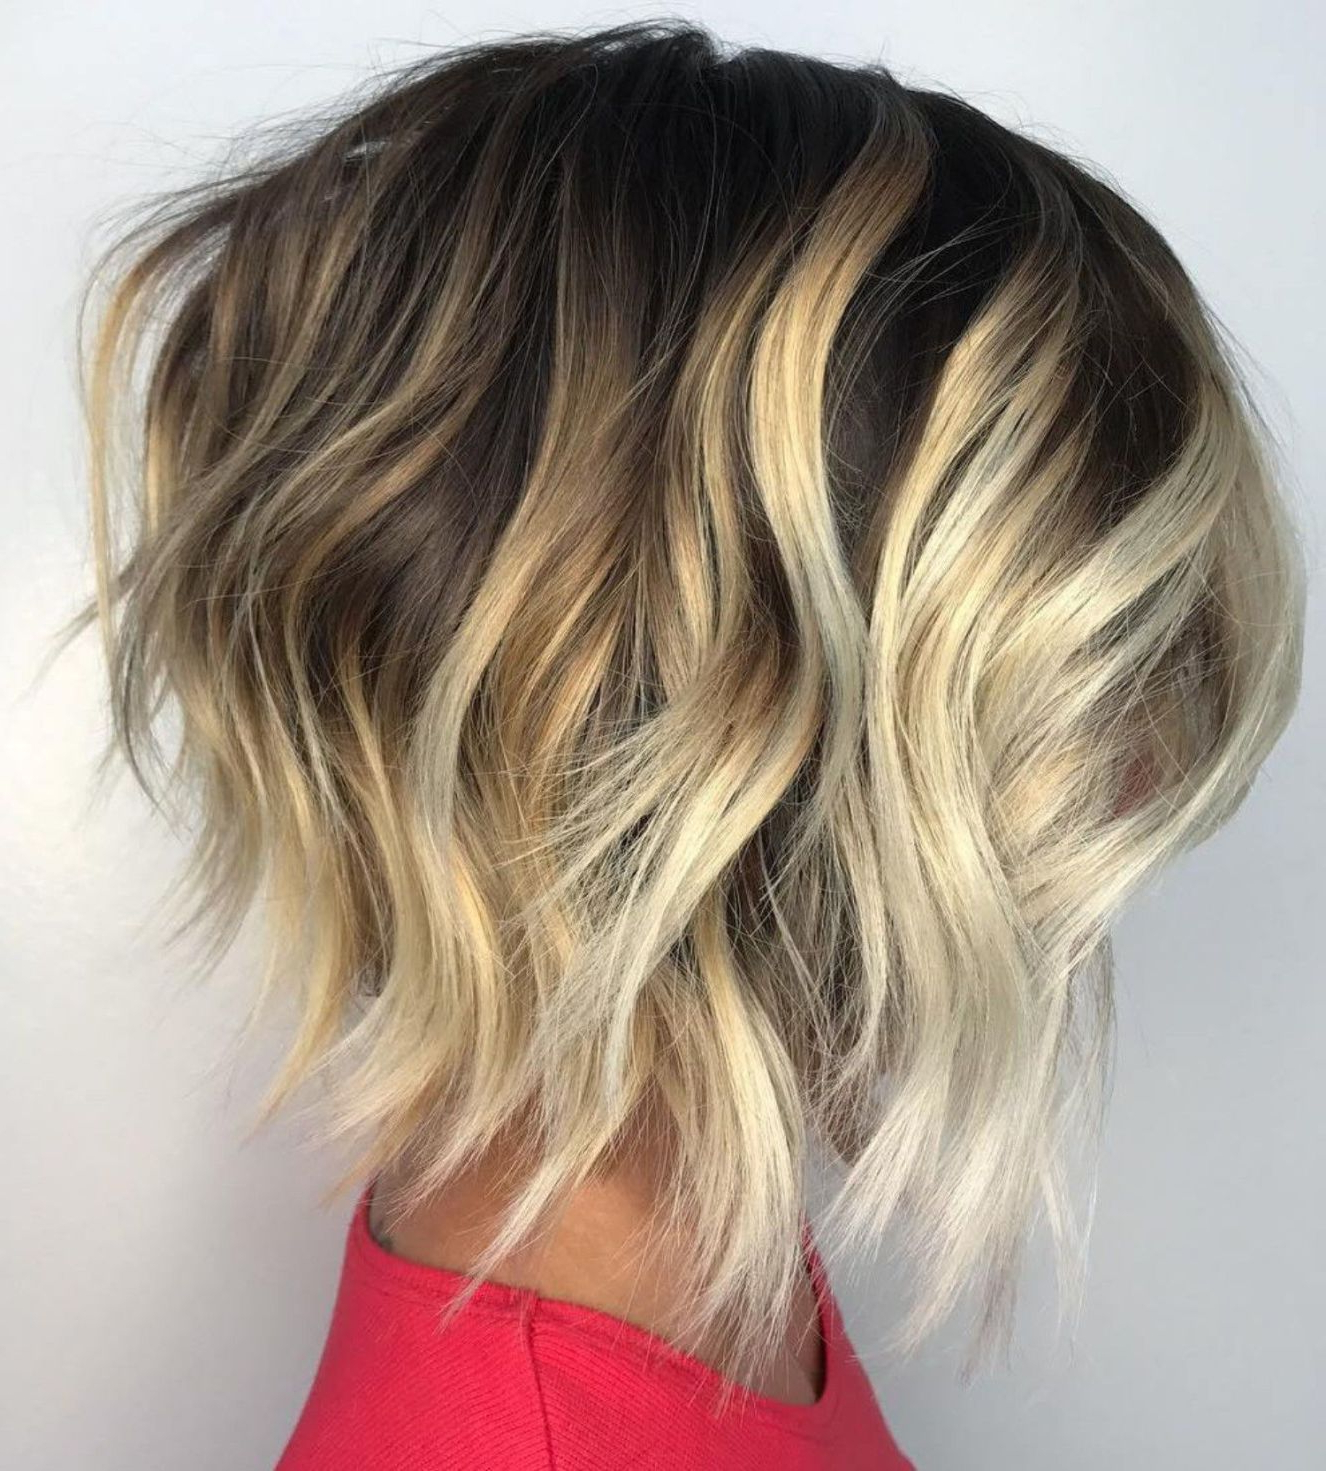 Fashionable Dynamic Feathered Brunette Shag Haircuts With 70 Cute And Easy To Style Short Layered Hairstyles In (View 12 of 20)